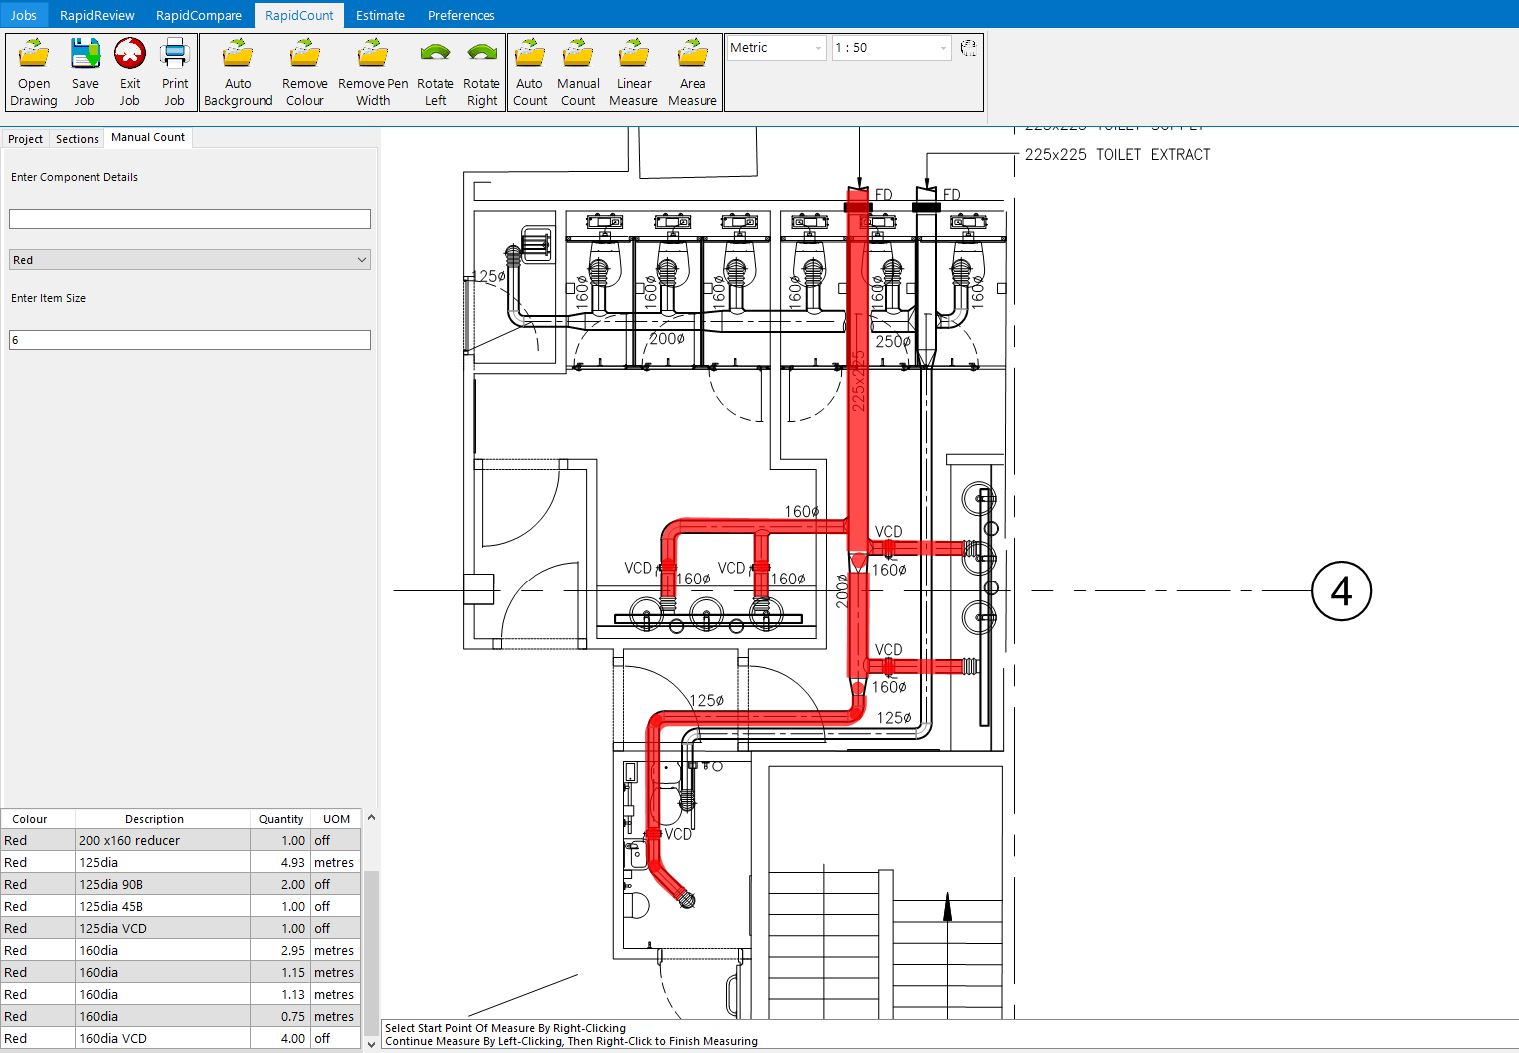 Hvac Duct Drawing Free Images Real Wiring Diagram Of System Estimating And Ductwork Software Rapidquote Uk Rh Rapidquoteuk Com Layout Drawings Building